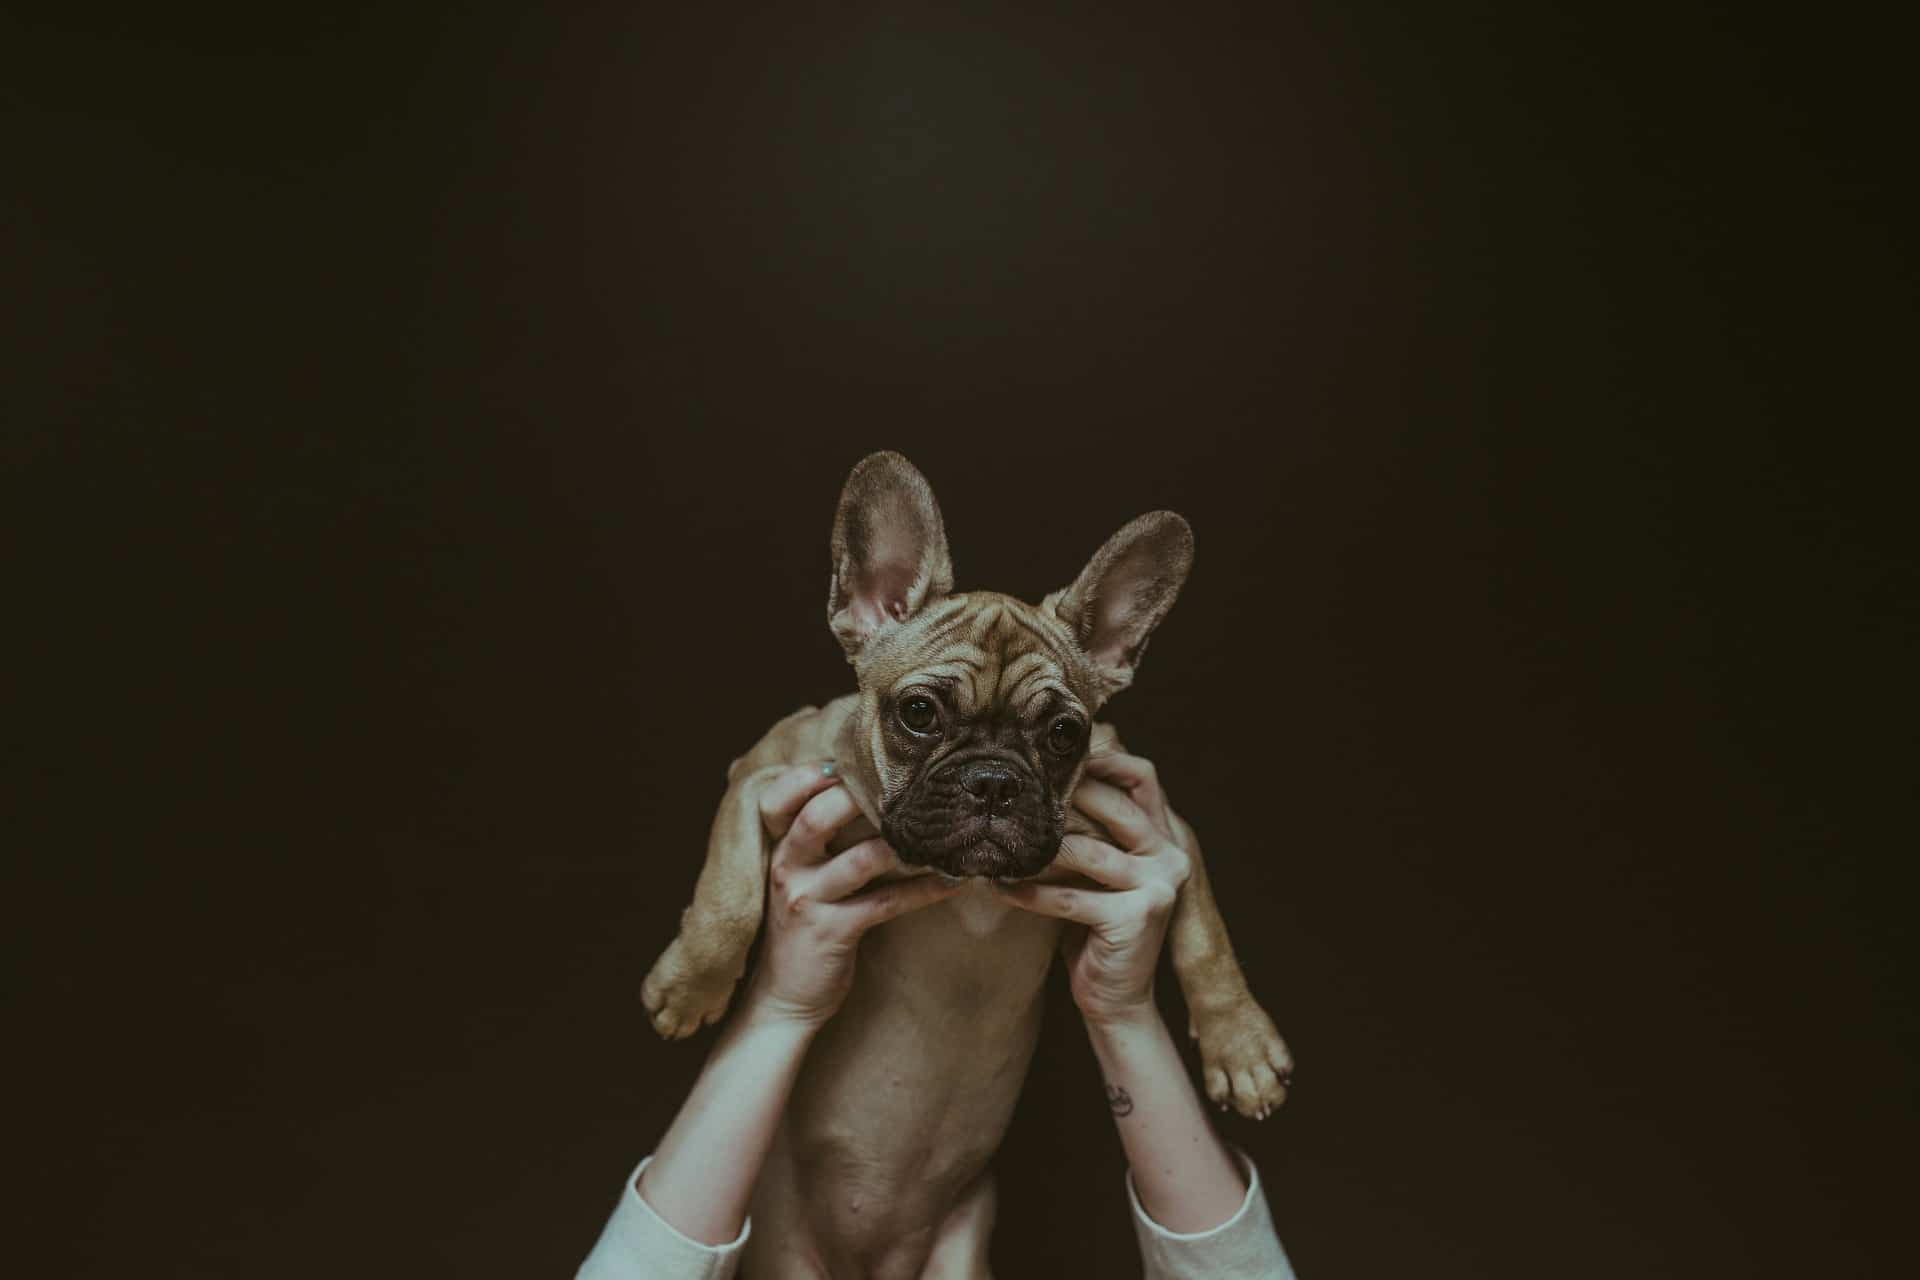 Person holding up a dog above their head